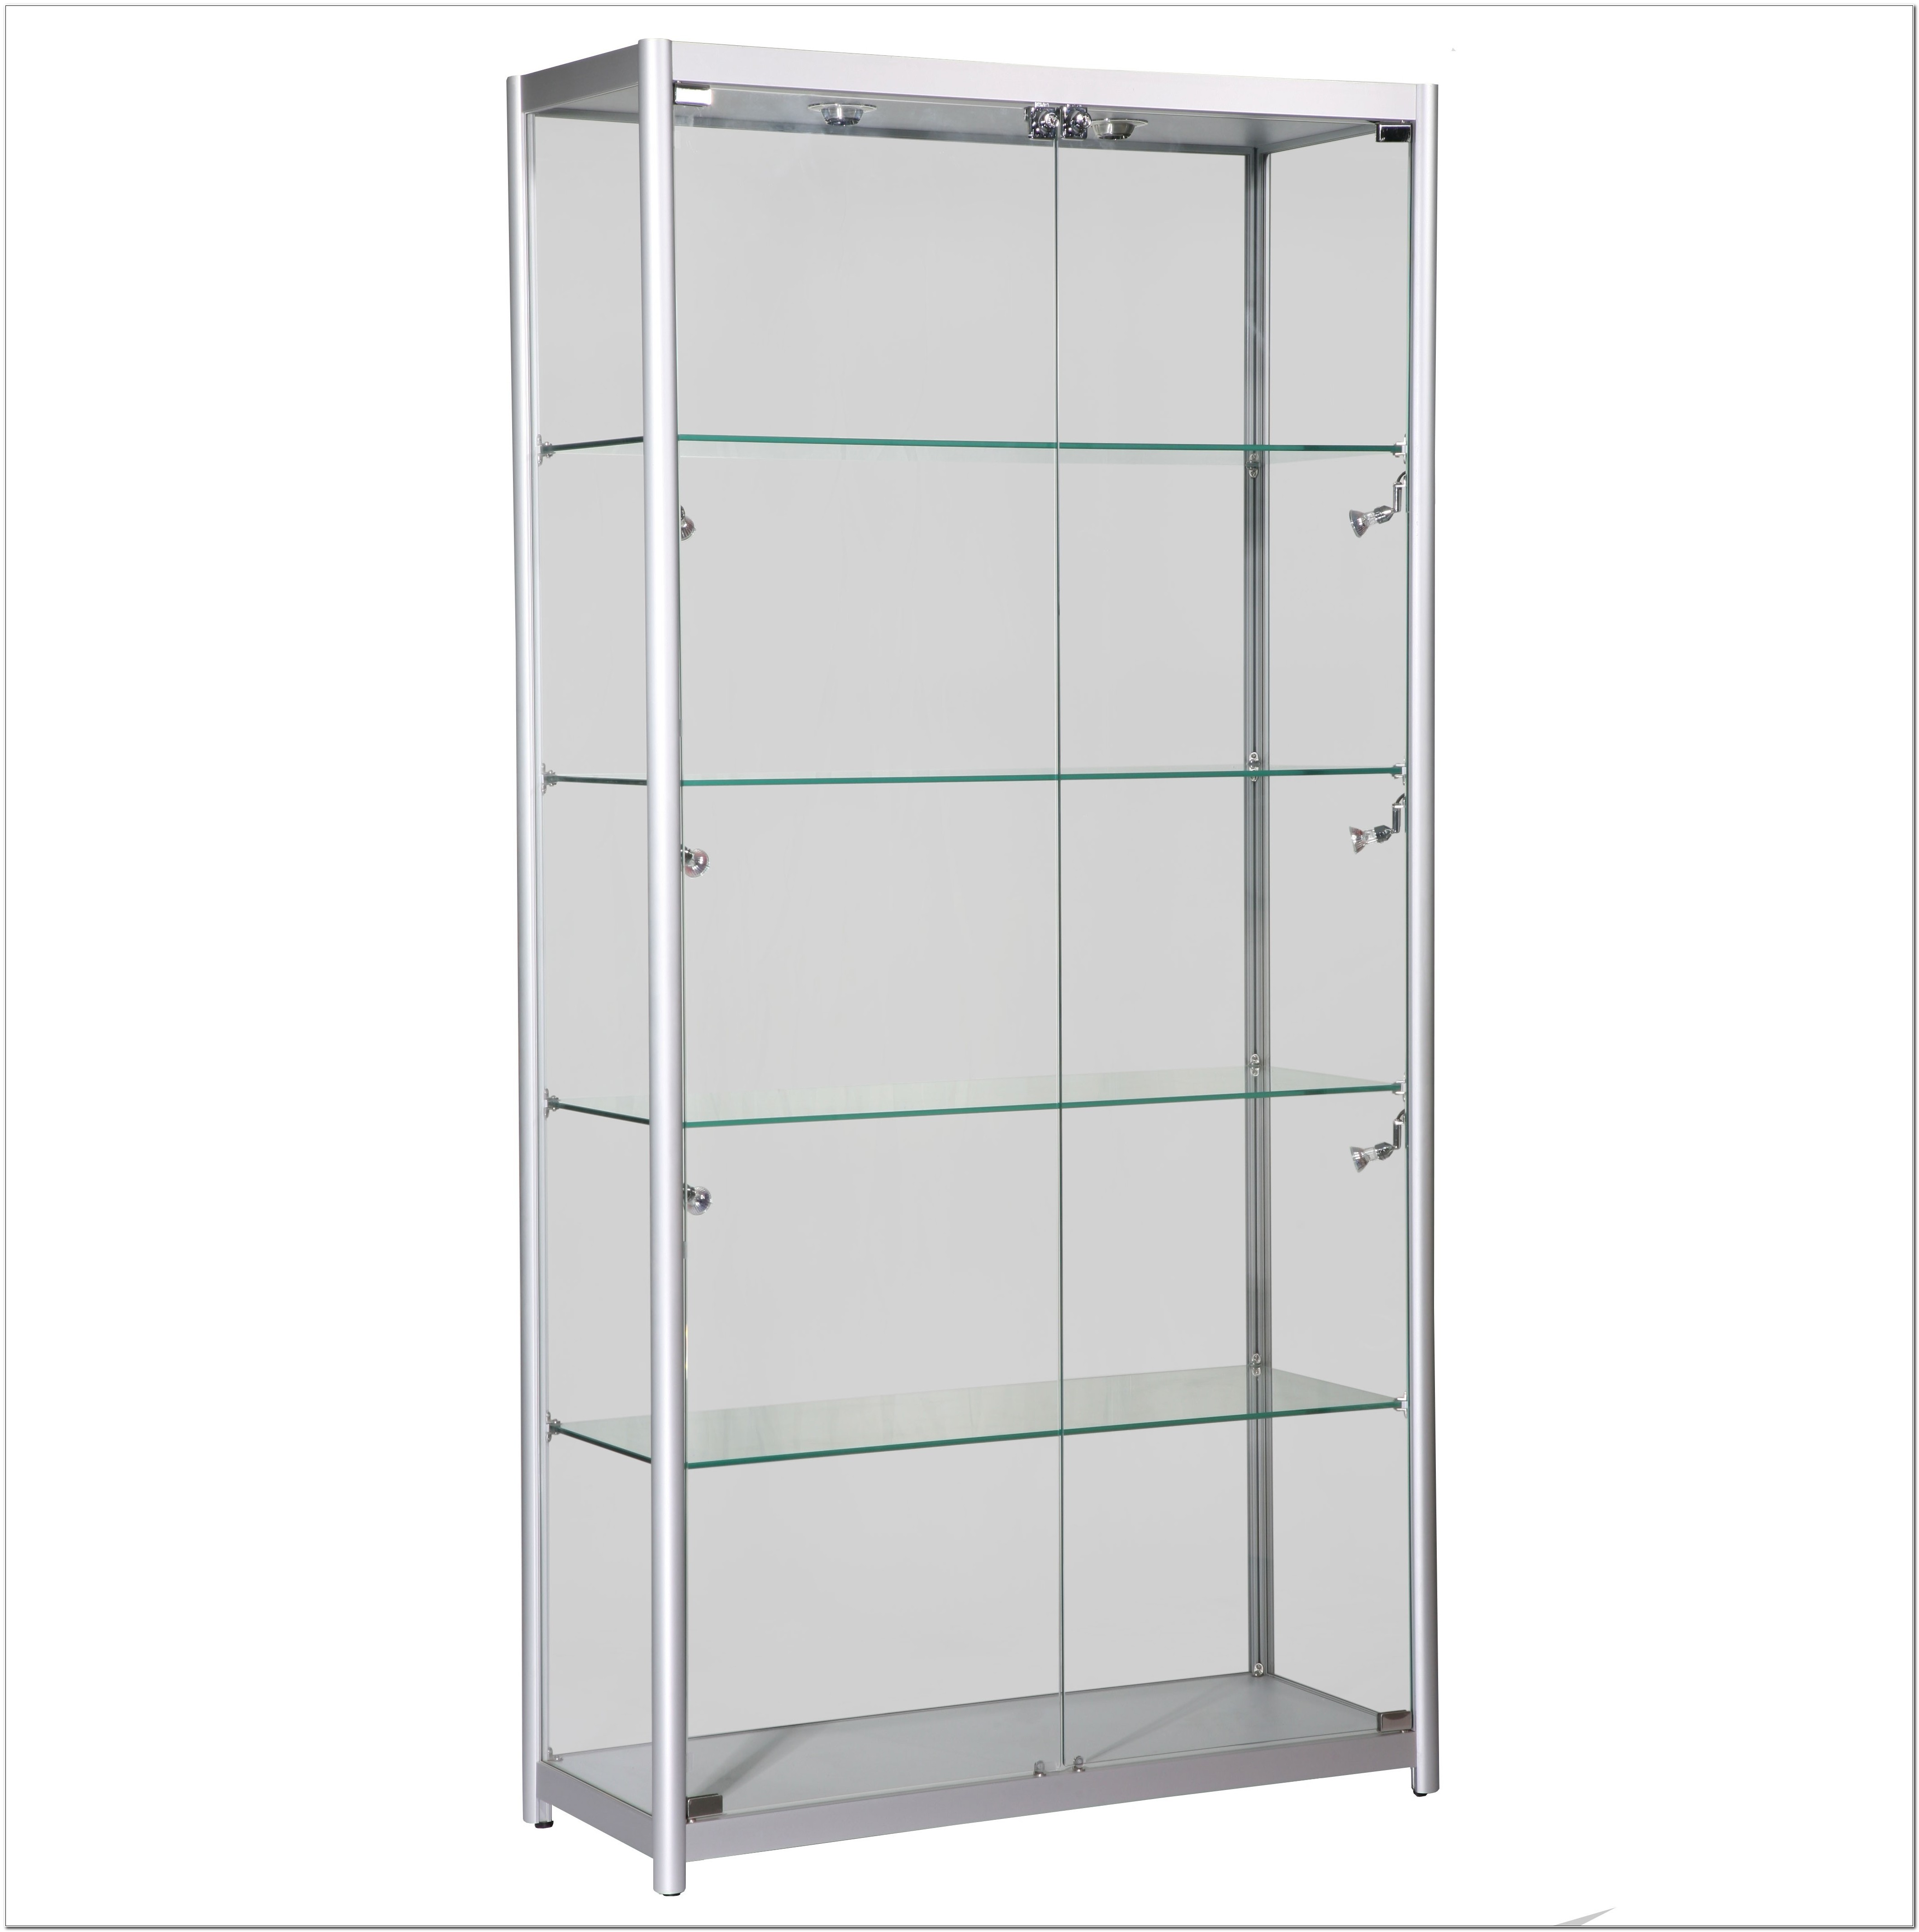 Lockable Glass Display Cabinets Perth